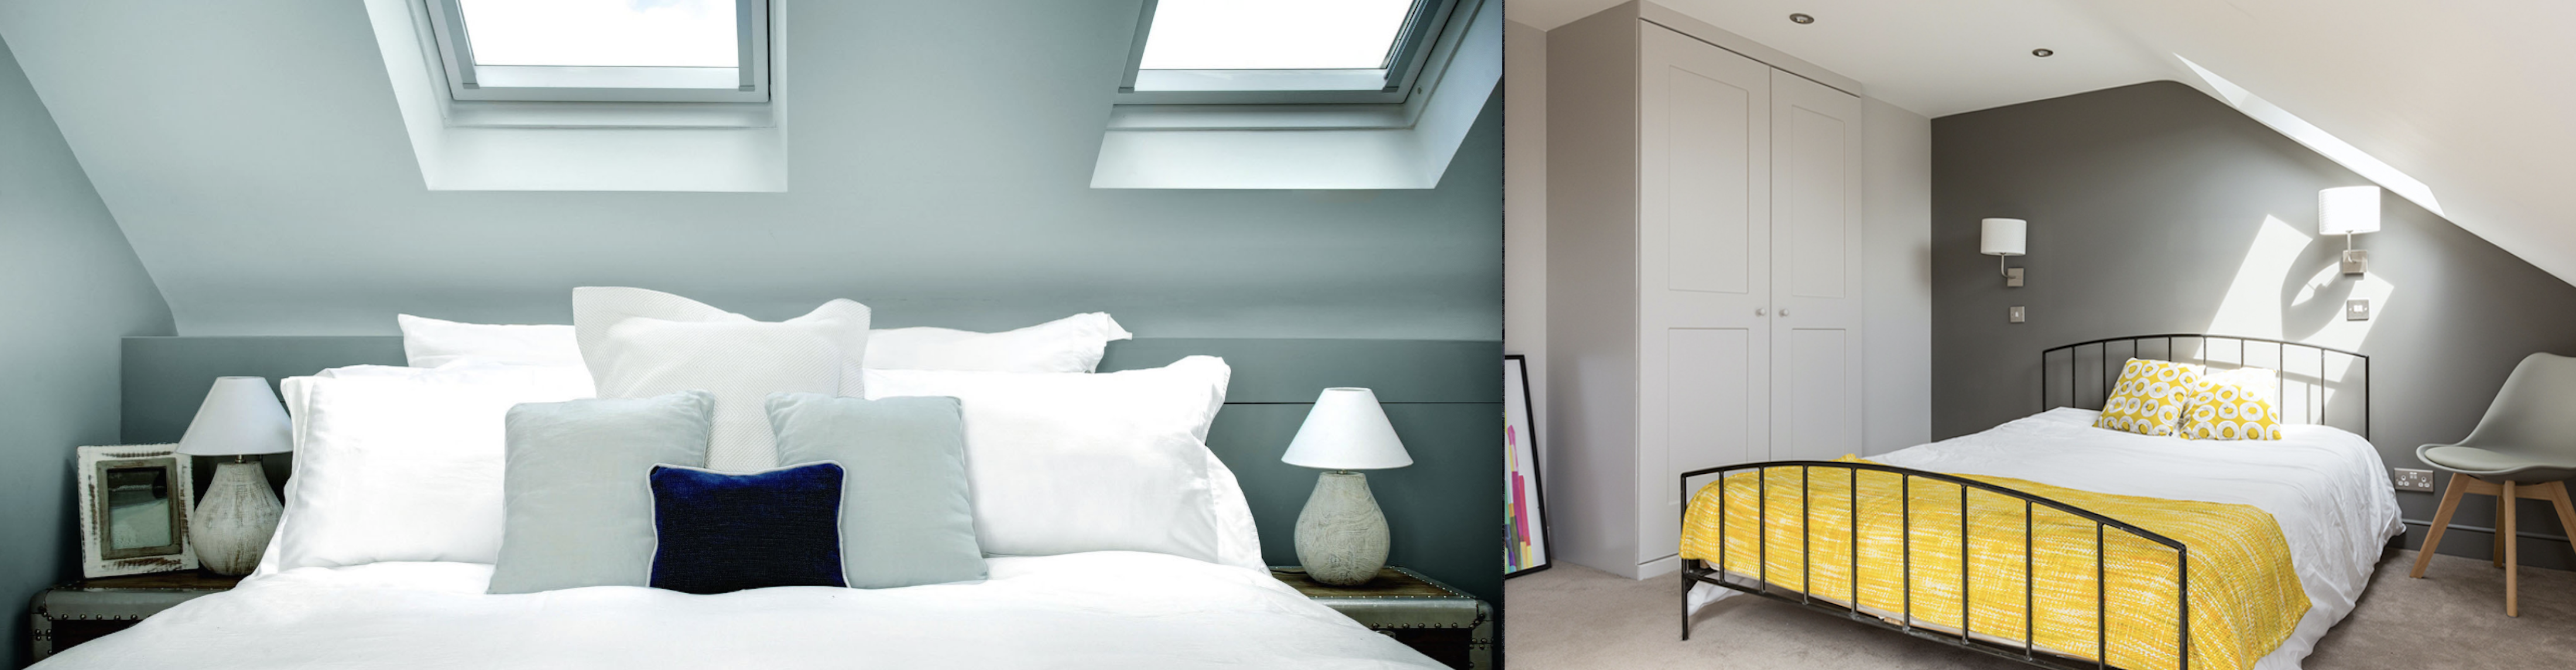 Beautiful Dormer loft conversion in Whitefield, creating a new master bedroom with private bathroom, walk in wardrobe and stunning new oak staircase with Velux polyurethane SK06 GPU windows.